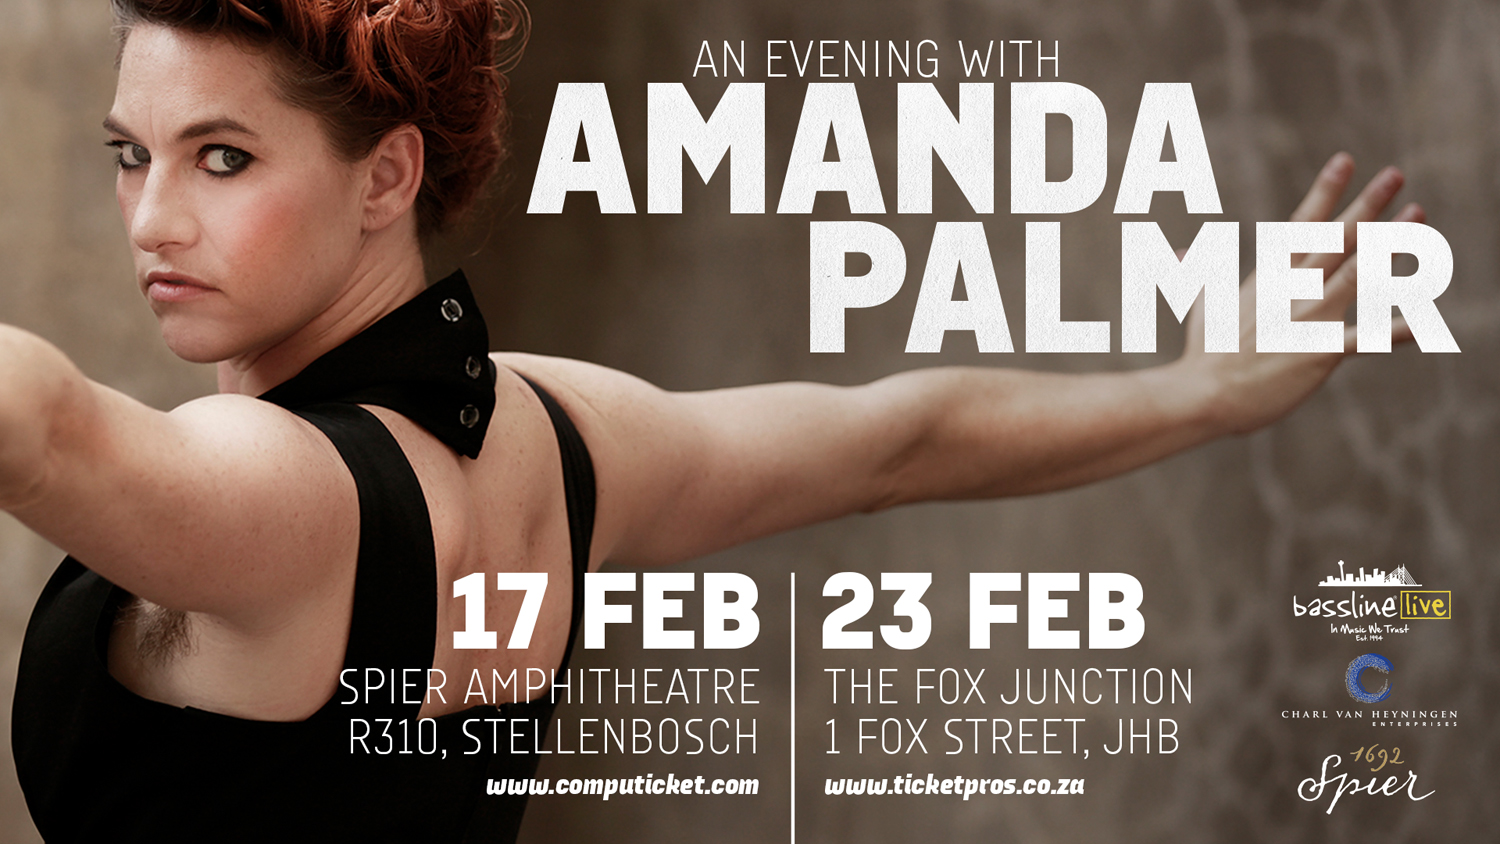 AmandaPalmer-Facebook-Event-Combined